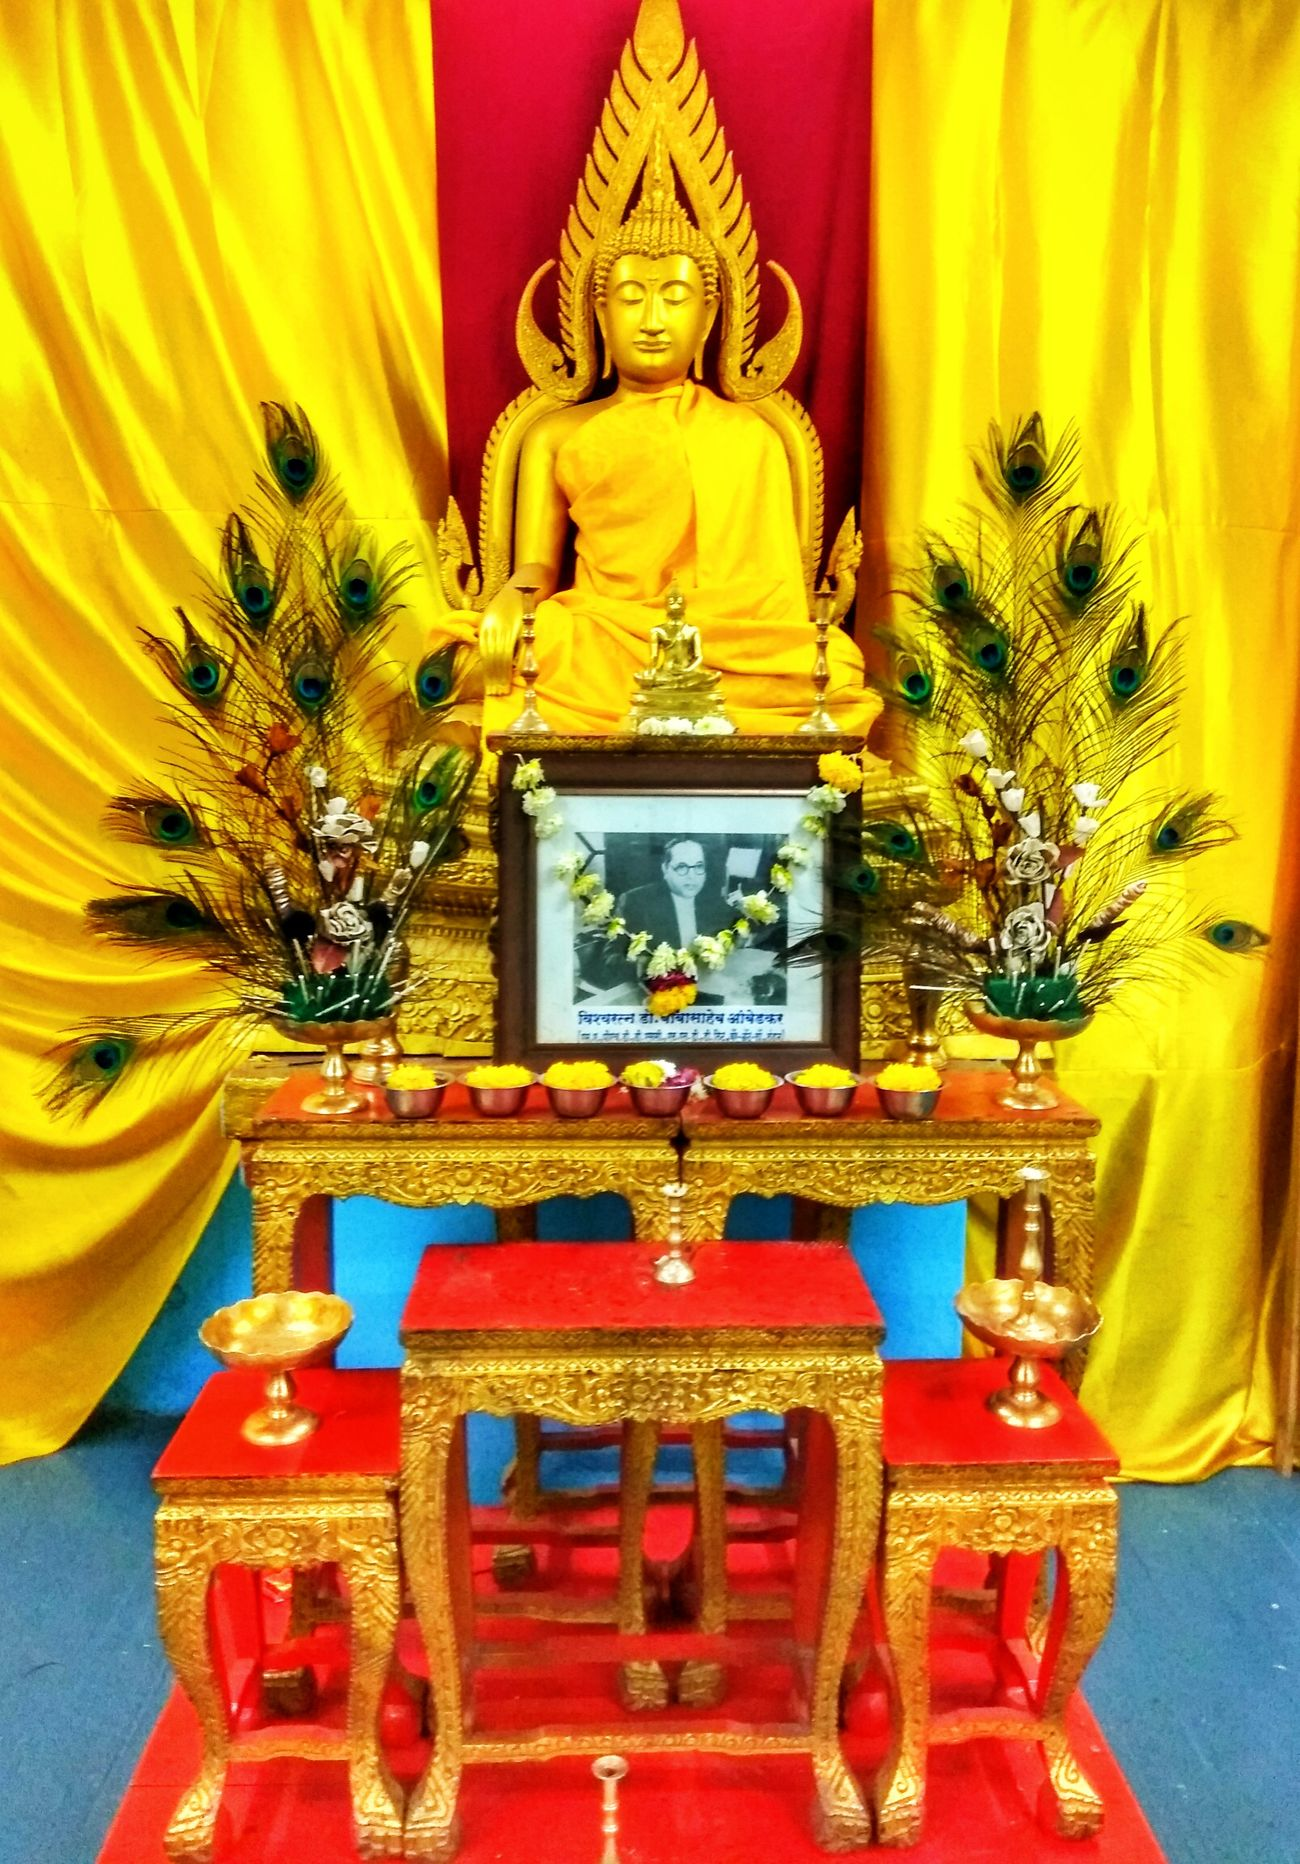 Religion Spirituality Place Of Worship Yellow Pattern No People Statue Flower Indoors  Gold Colored Architecture Day Golden Temple Peace ✌ Peace And Love ✌❤ Lord Buddha Lord